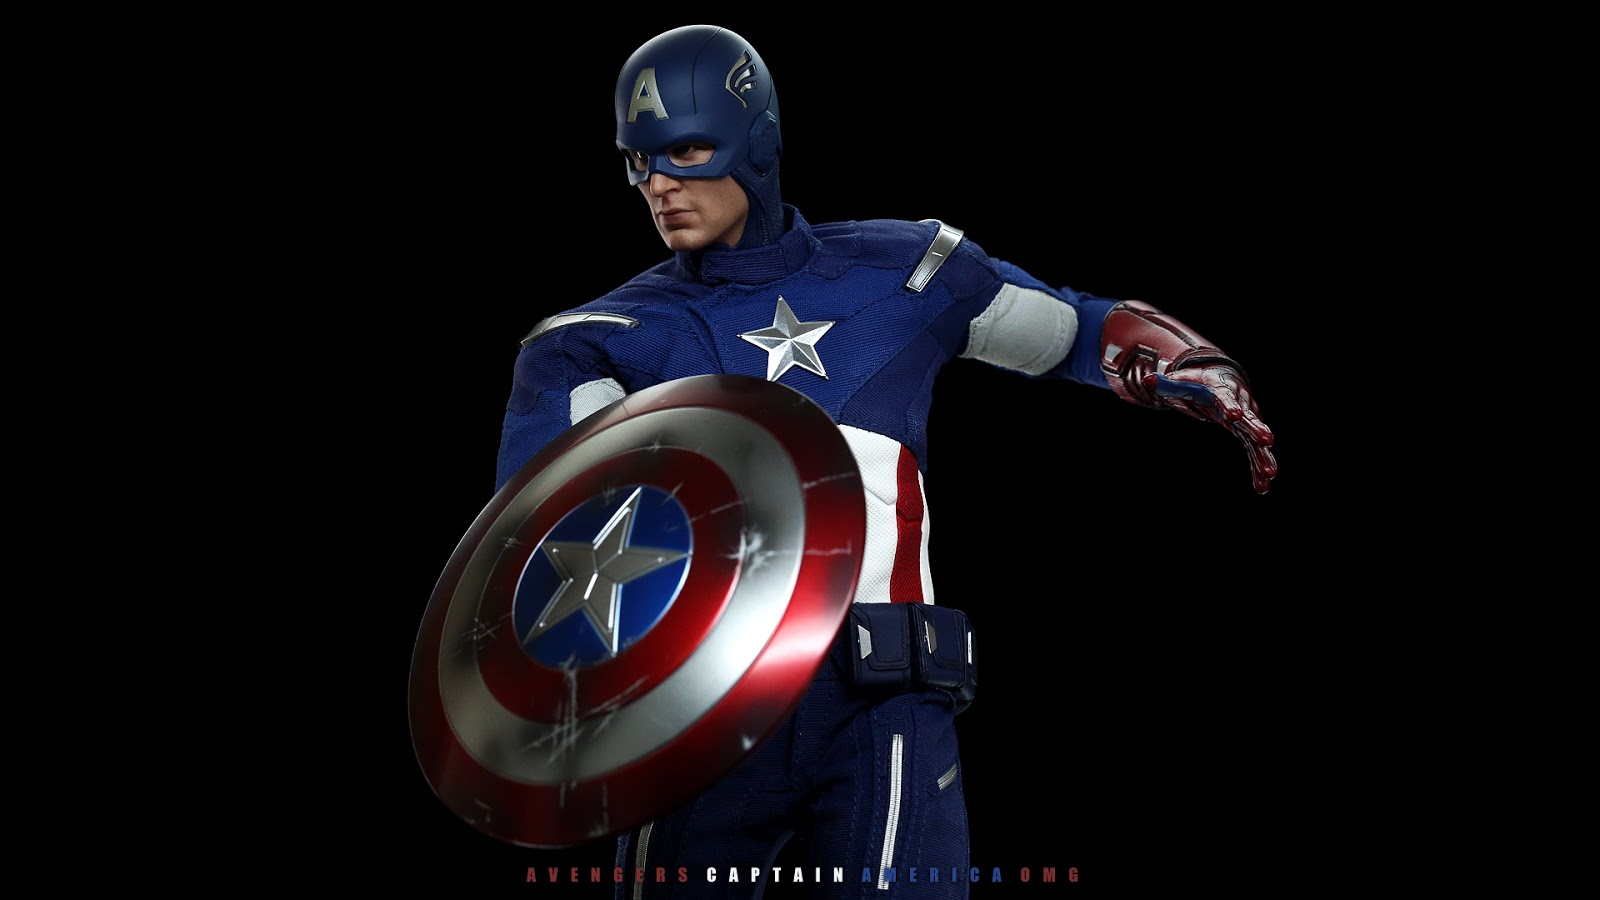 Captain ameria example best theme - Captain america hd images download ...